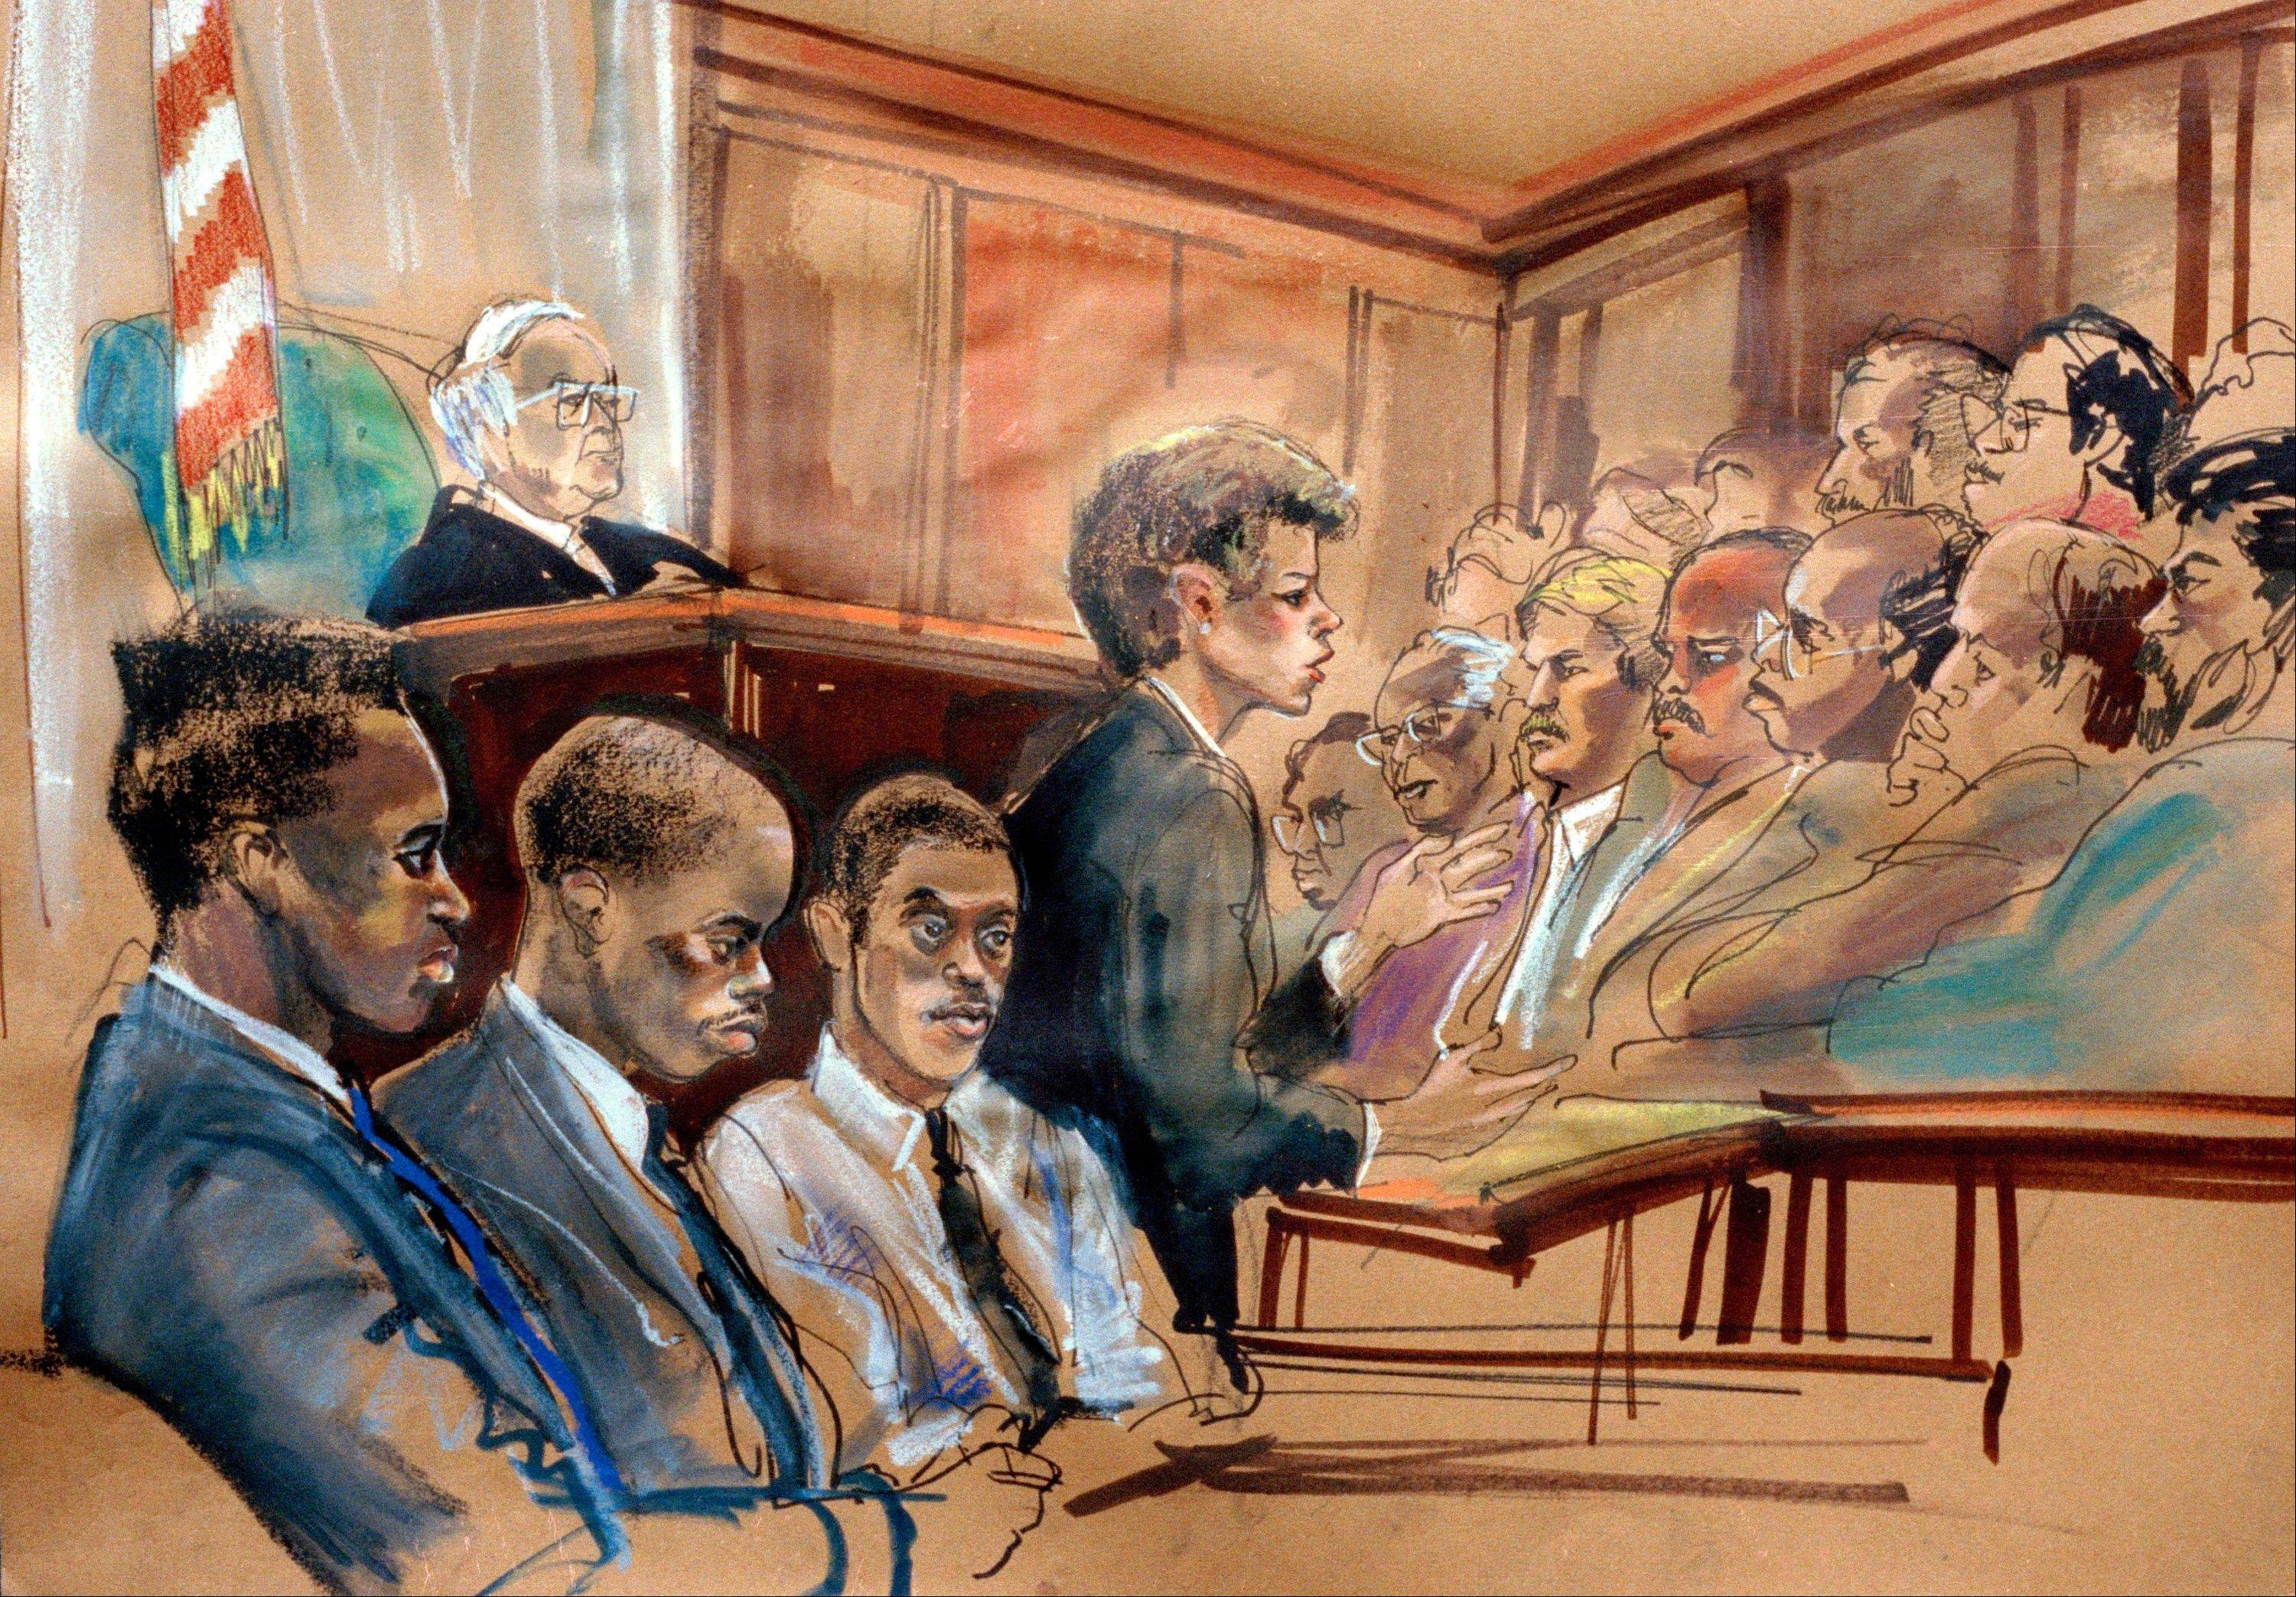 In this June 25, 1990, file photo of an artist's rendering of the opening statements in the Central Park rape trial made in the State Supreme Court in New York, from left, defendants Yusef Salaam, Antron McCray and Raymond Santana sit in court while Assistant District Attorney Elizabeth Lederer speaks and Judge Thomas B. Galligan listens from the bench, upper left. Five teenage boys maintained their innocence as they grew up behind bars after being convicted of the rape and beating of the woman who came to be known as the Central Park jogger. Their convictions were eventually tossed out by a judge when new evidence surfaced linking someone else to the crime. But their legal battle goes on: A $250 million federal lawsuit against police and prosecutors has been pending nearly a decade, with no resolution in sight.